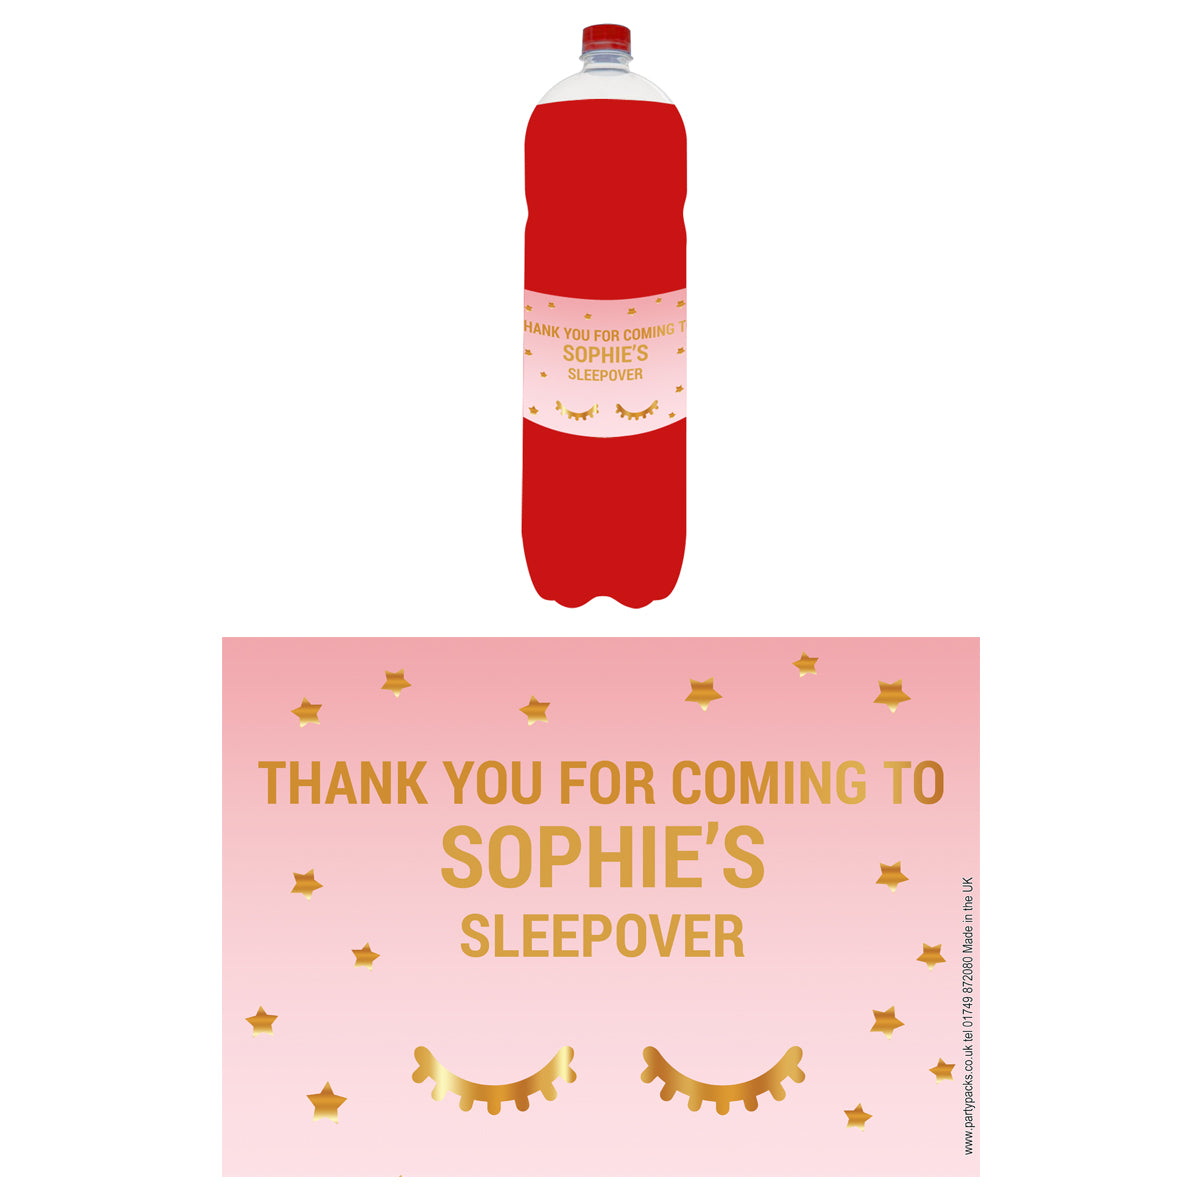 Personalised Bottle Labels - Sleepover - Pack of 4